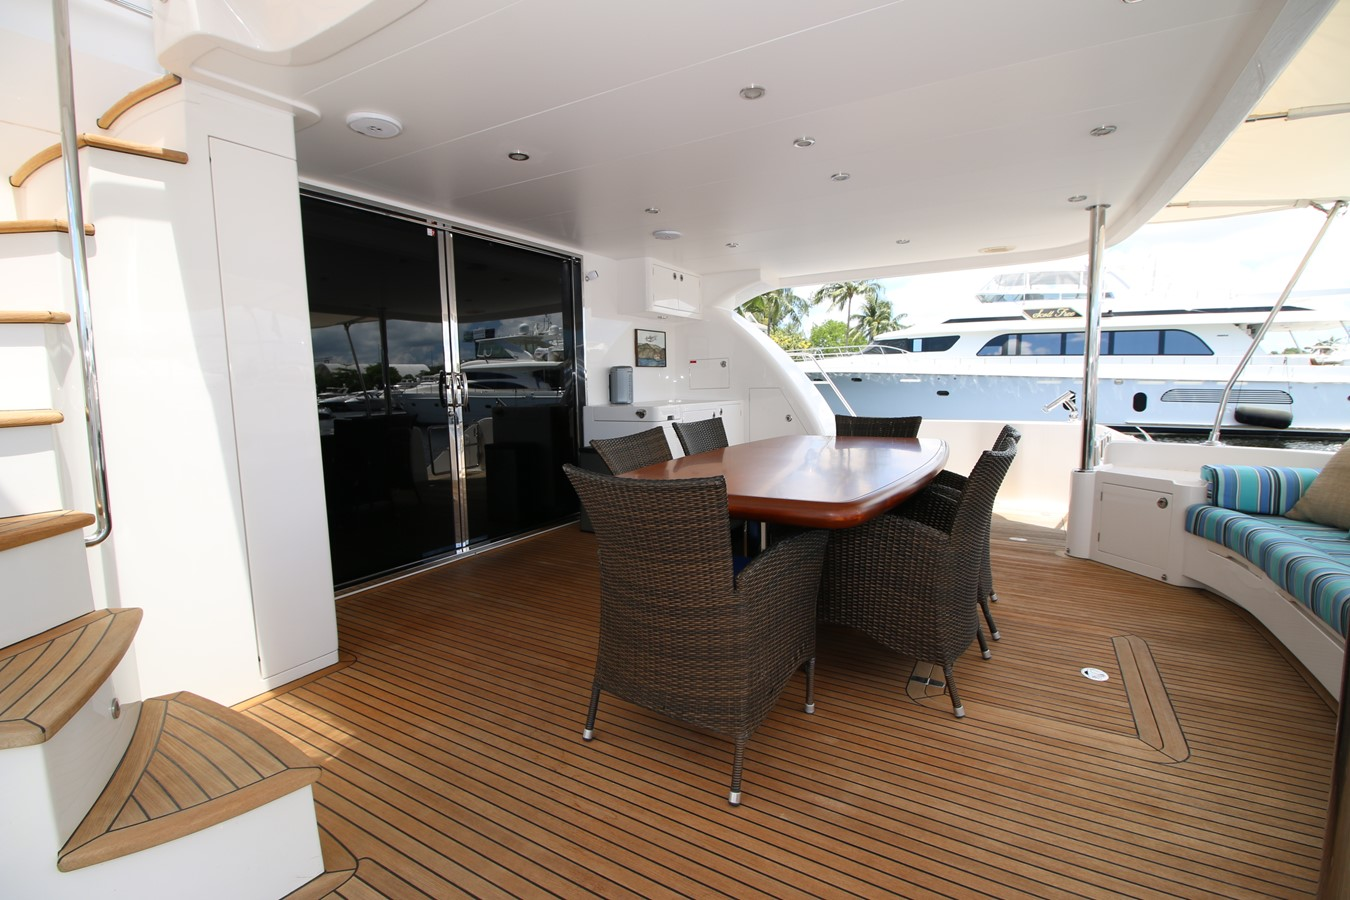 AFT DECK 2014 HORIZON PC60 SKYLOUNGE Catamaran 2547231